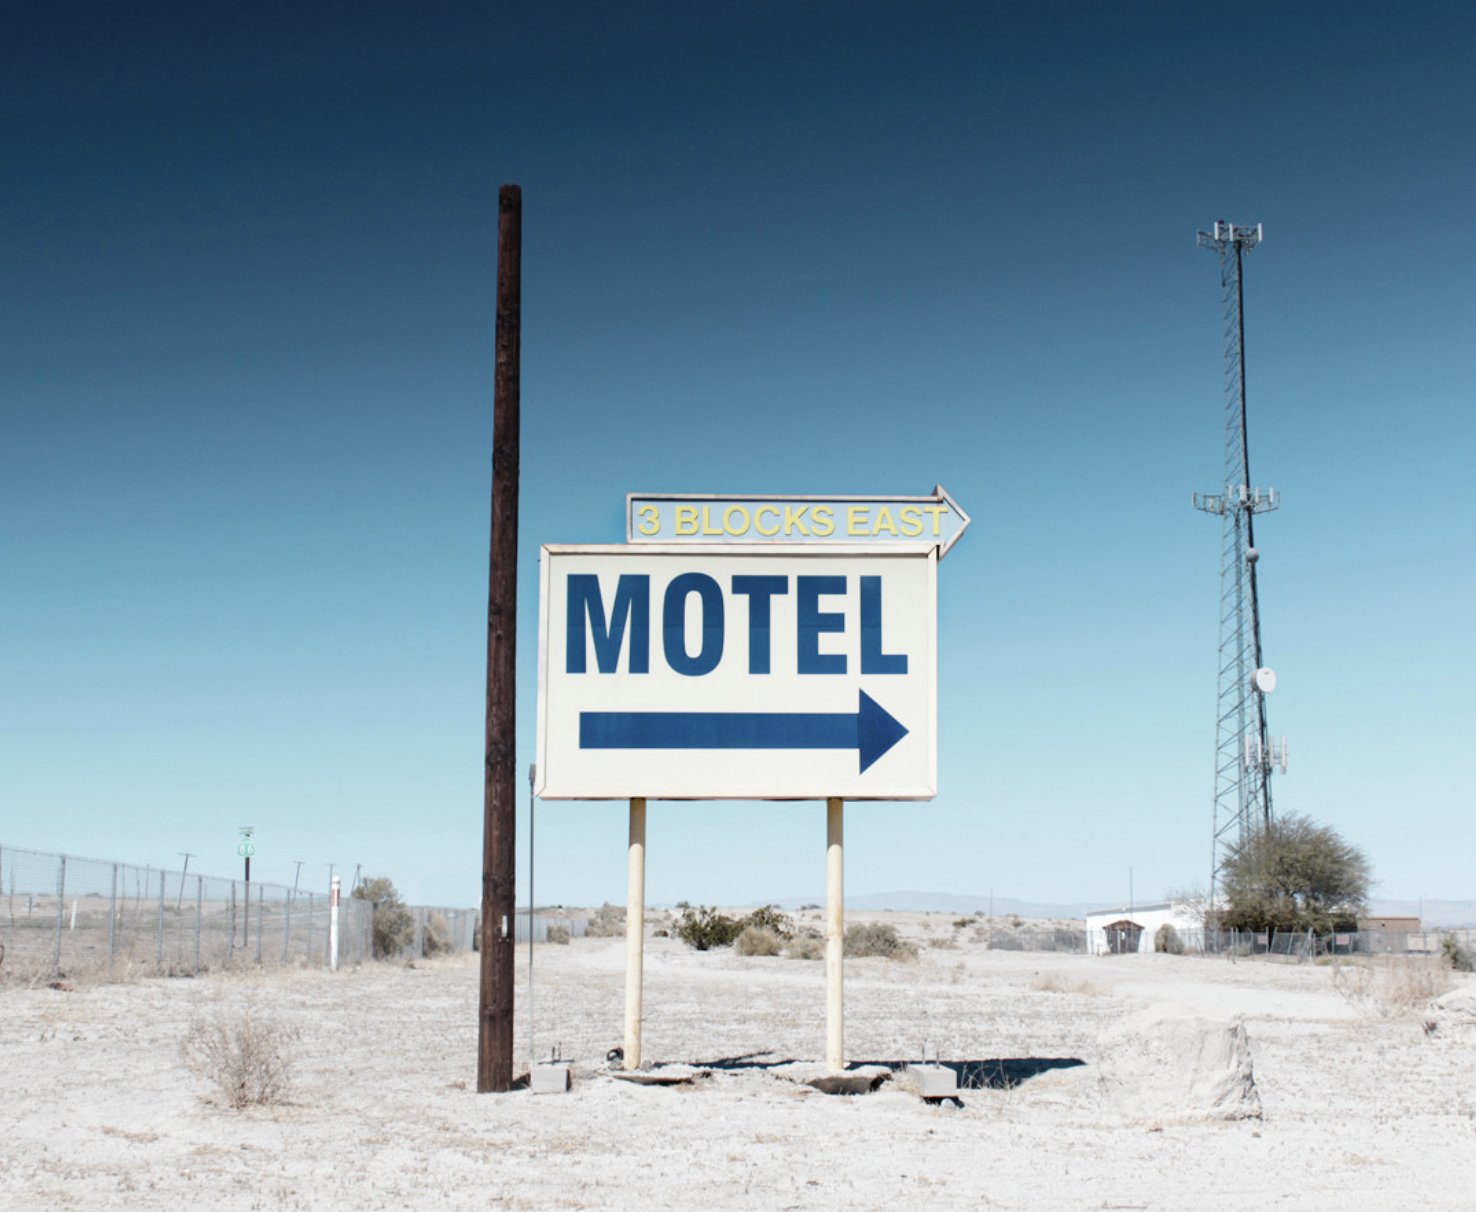 Motel 3 Blocks East